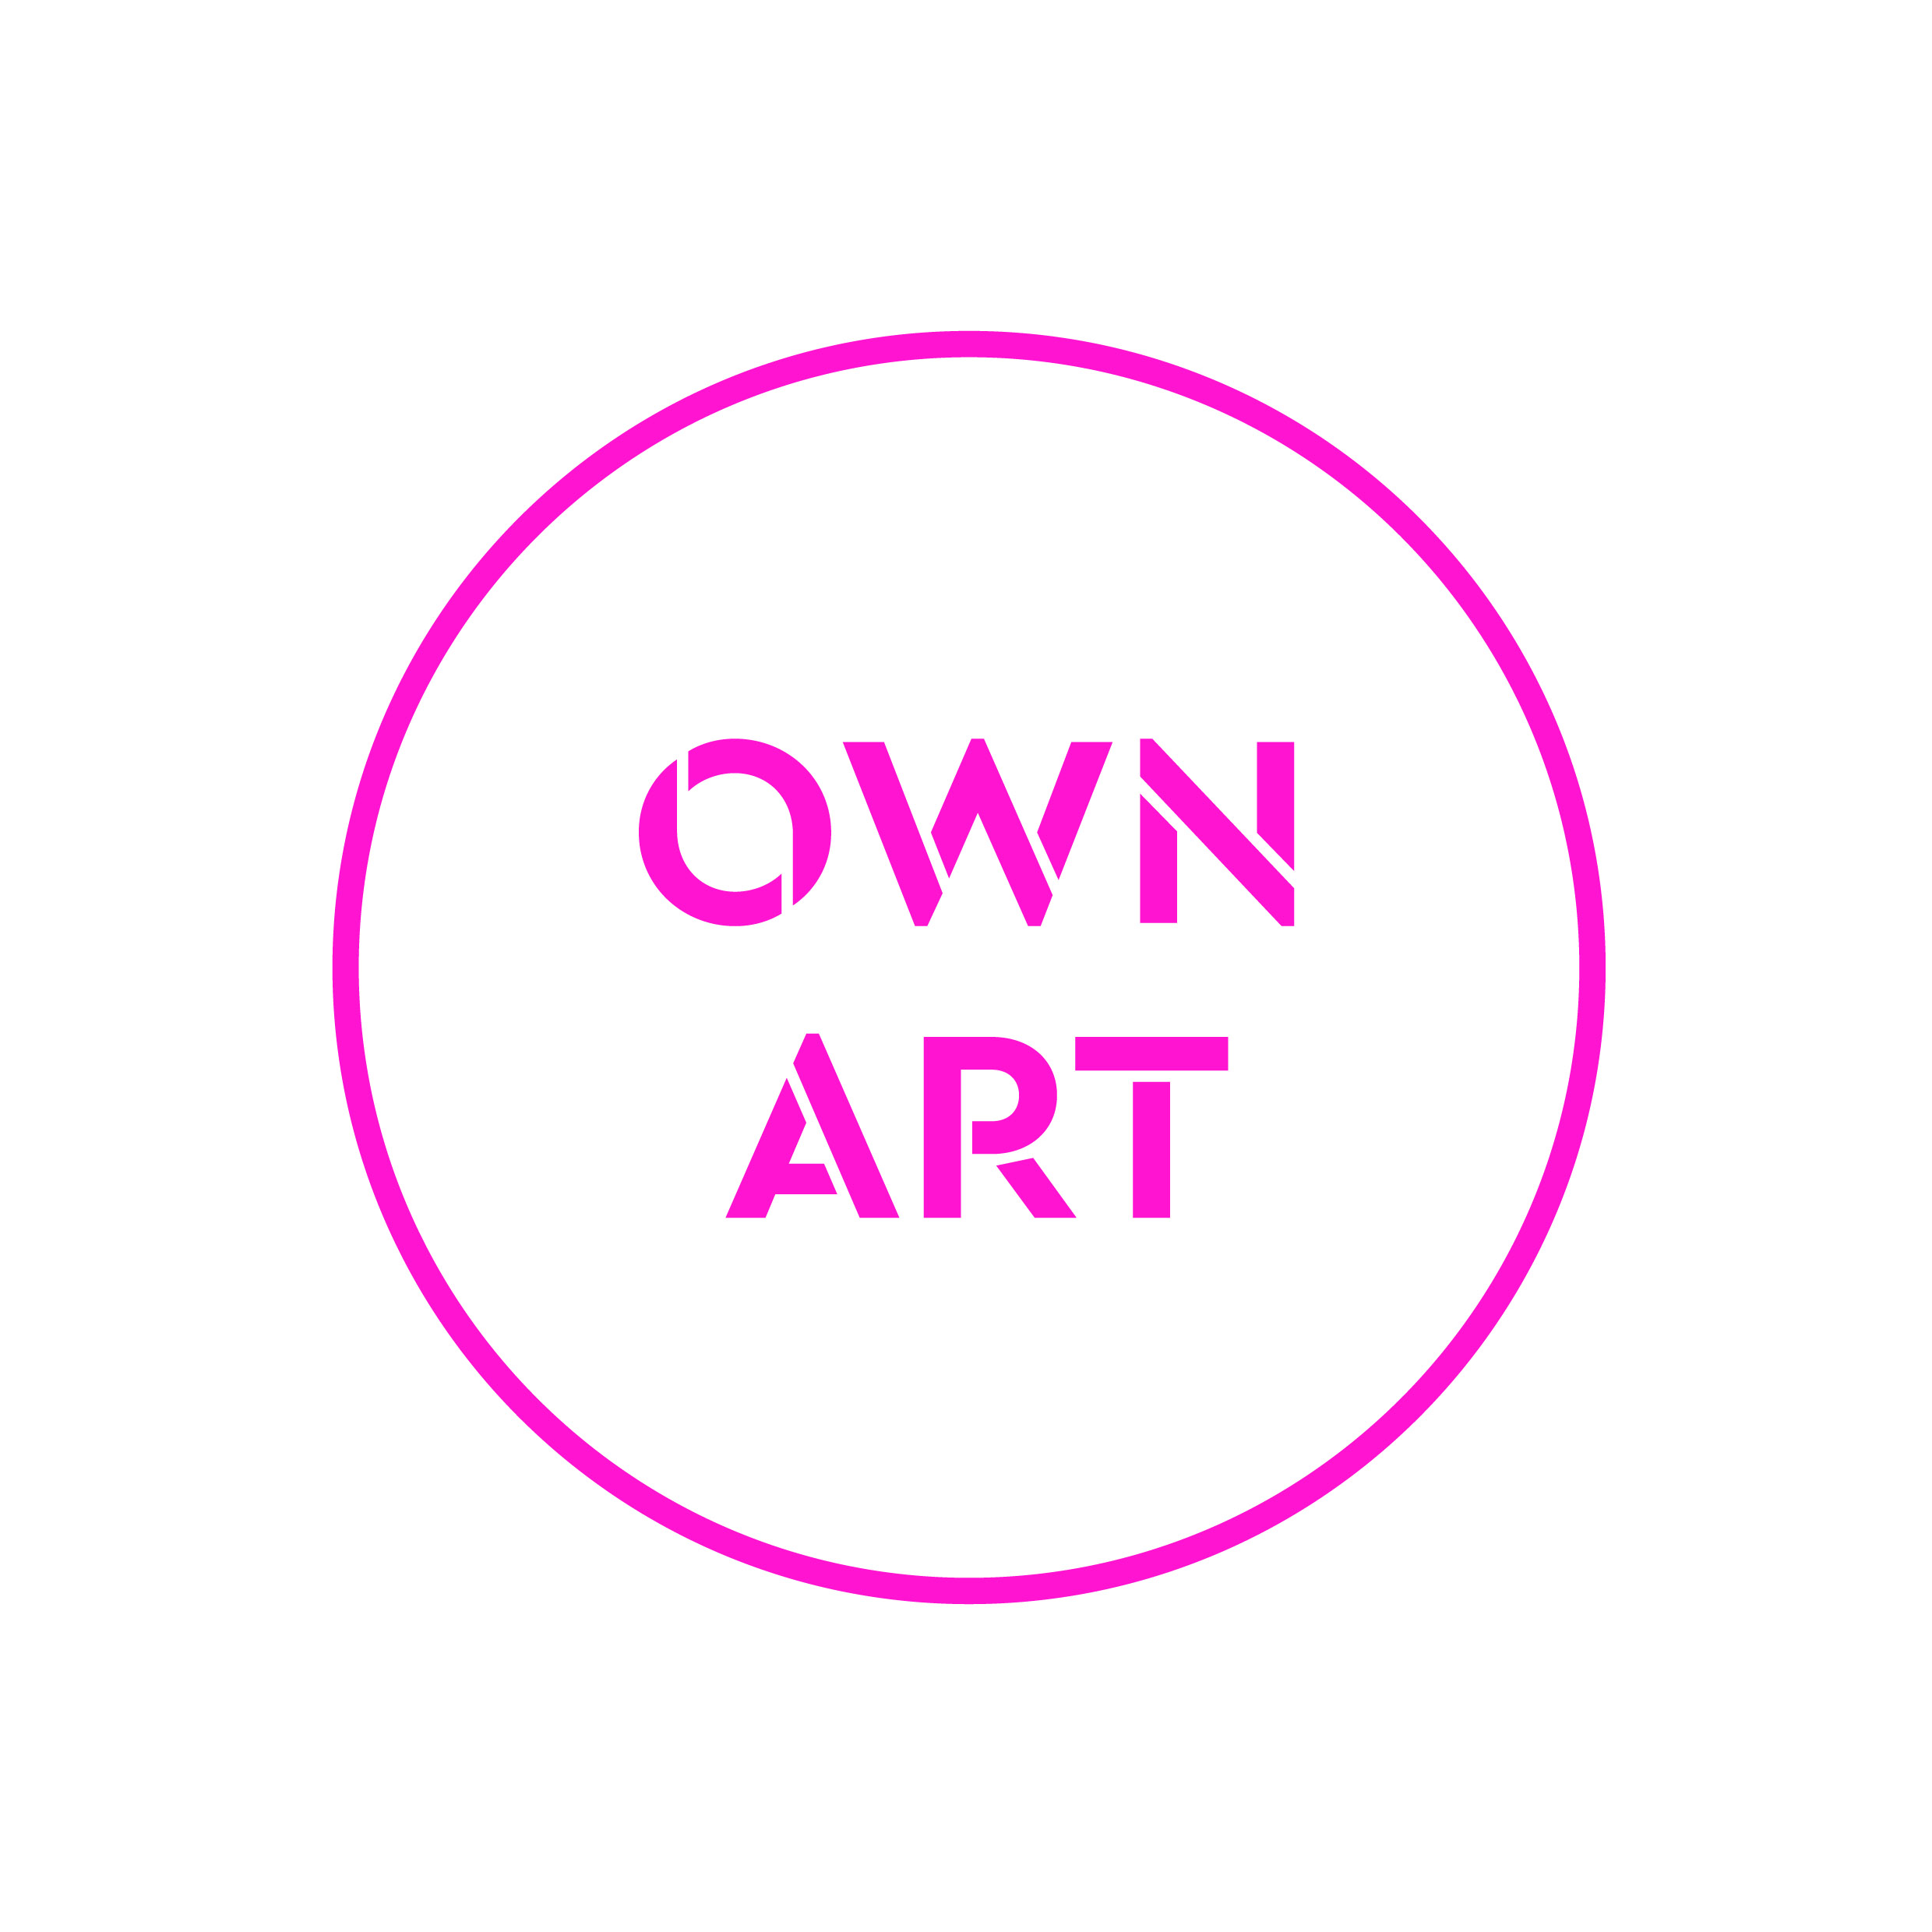 Own Art_master_logotypes_all_CMYK_pink.jpg